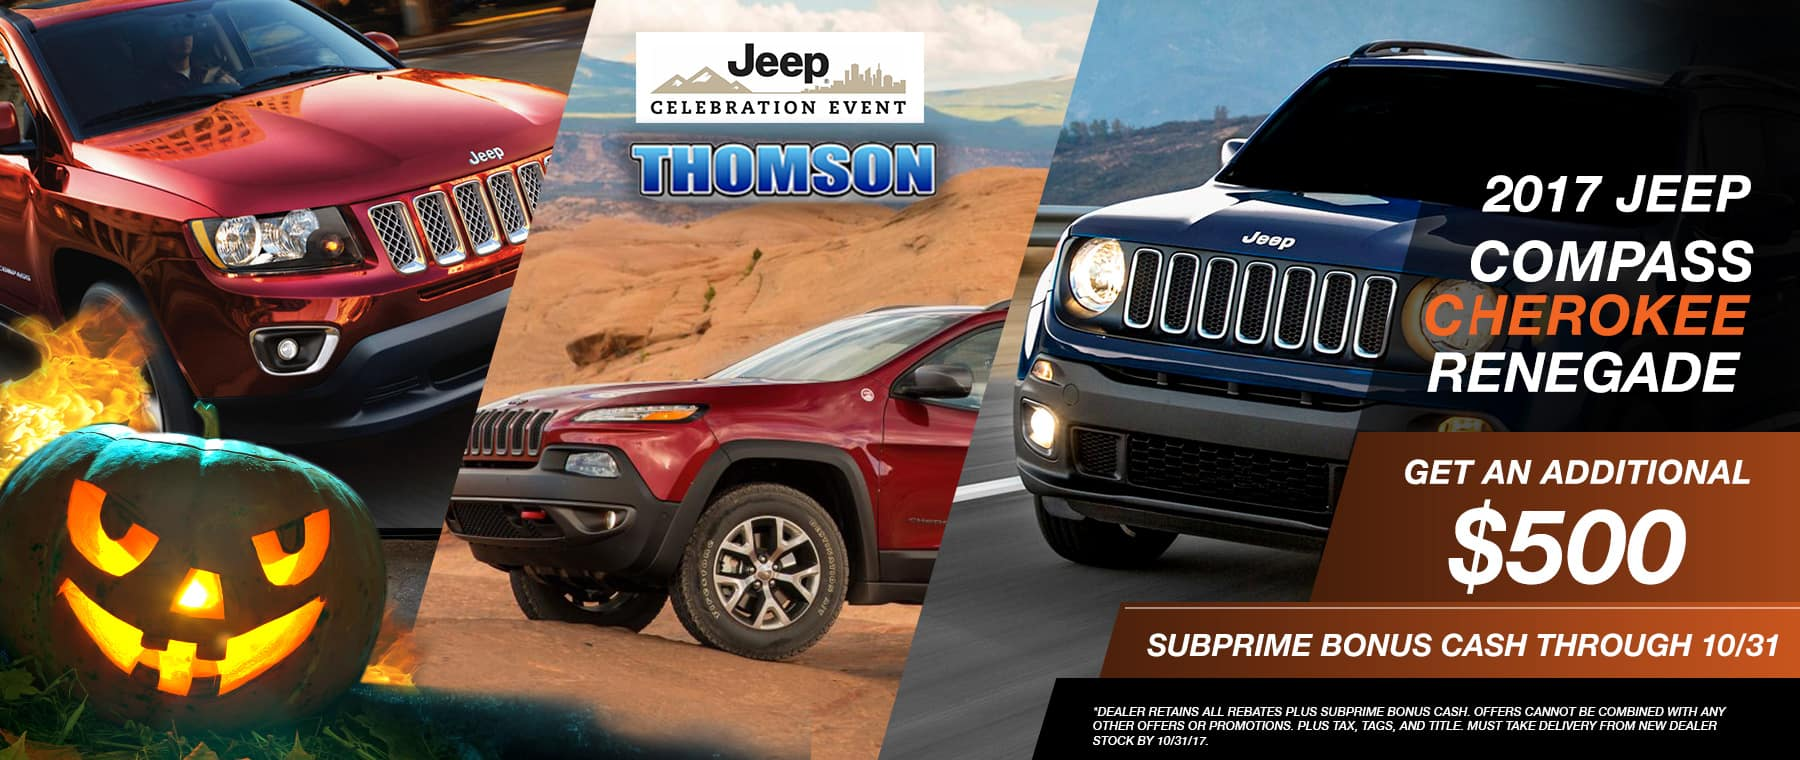 2017 Compass Cherokee and Renegade special at Thomson Jeep in Thomson, GA